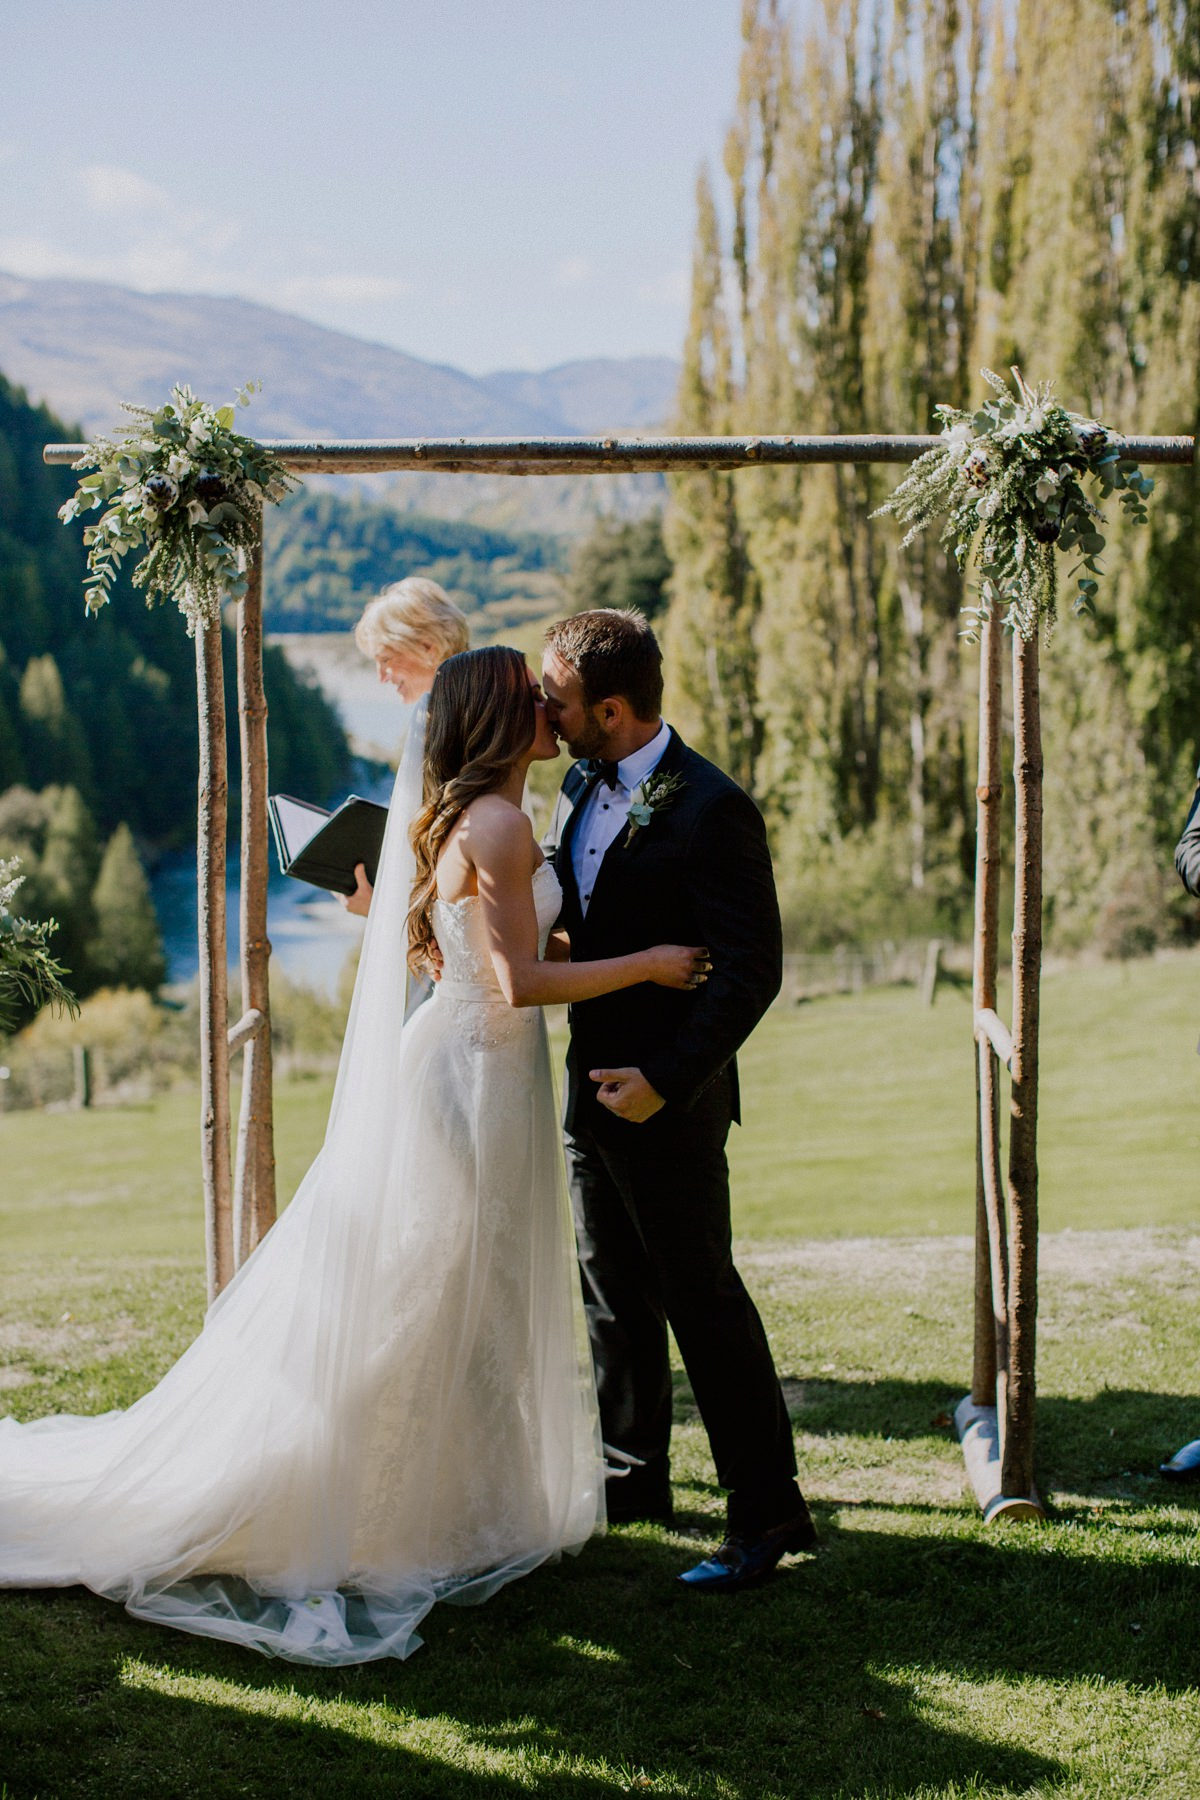 Alinta-Paul-New-Zealand-Destination-Wedding-84